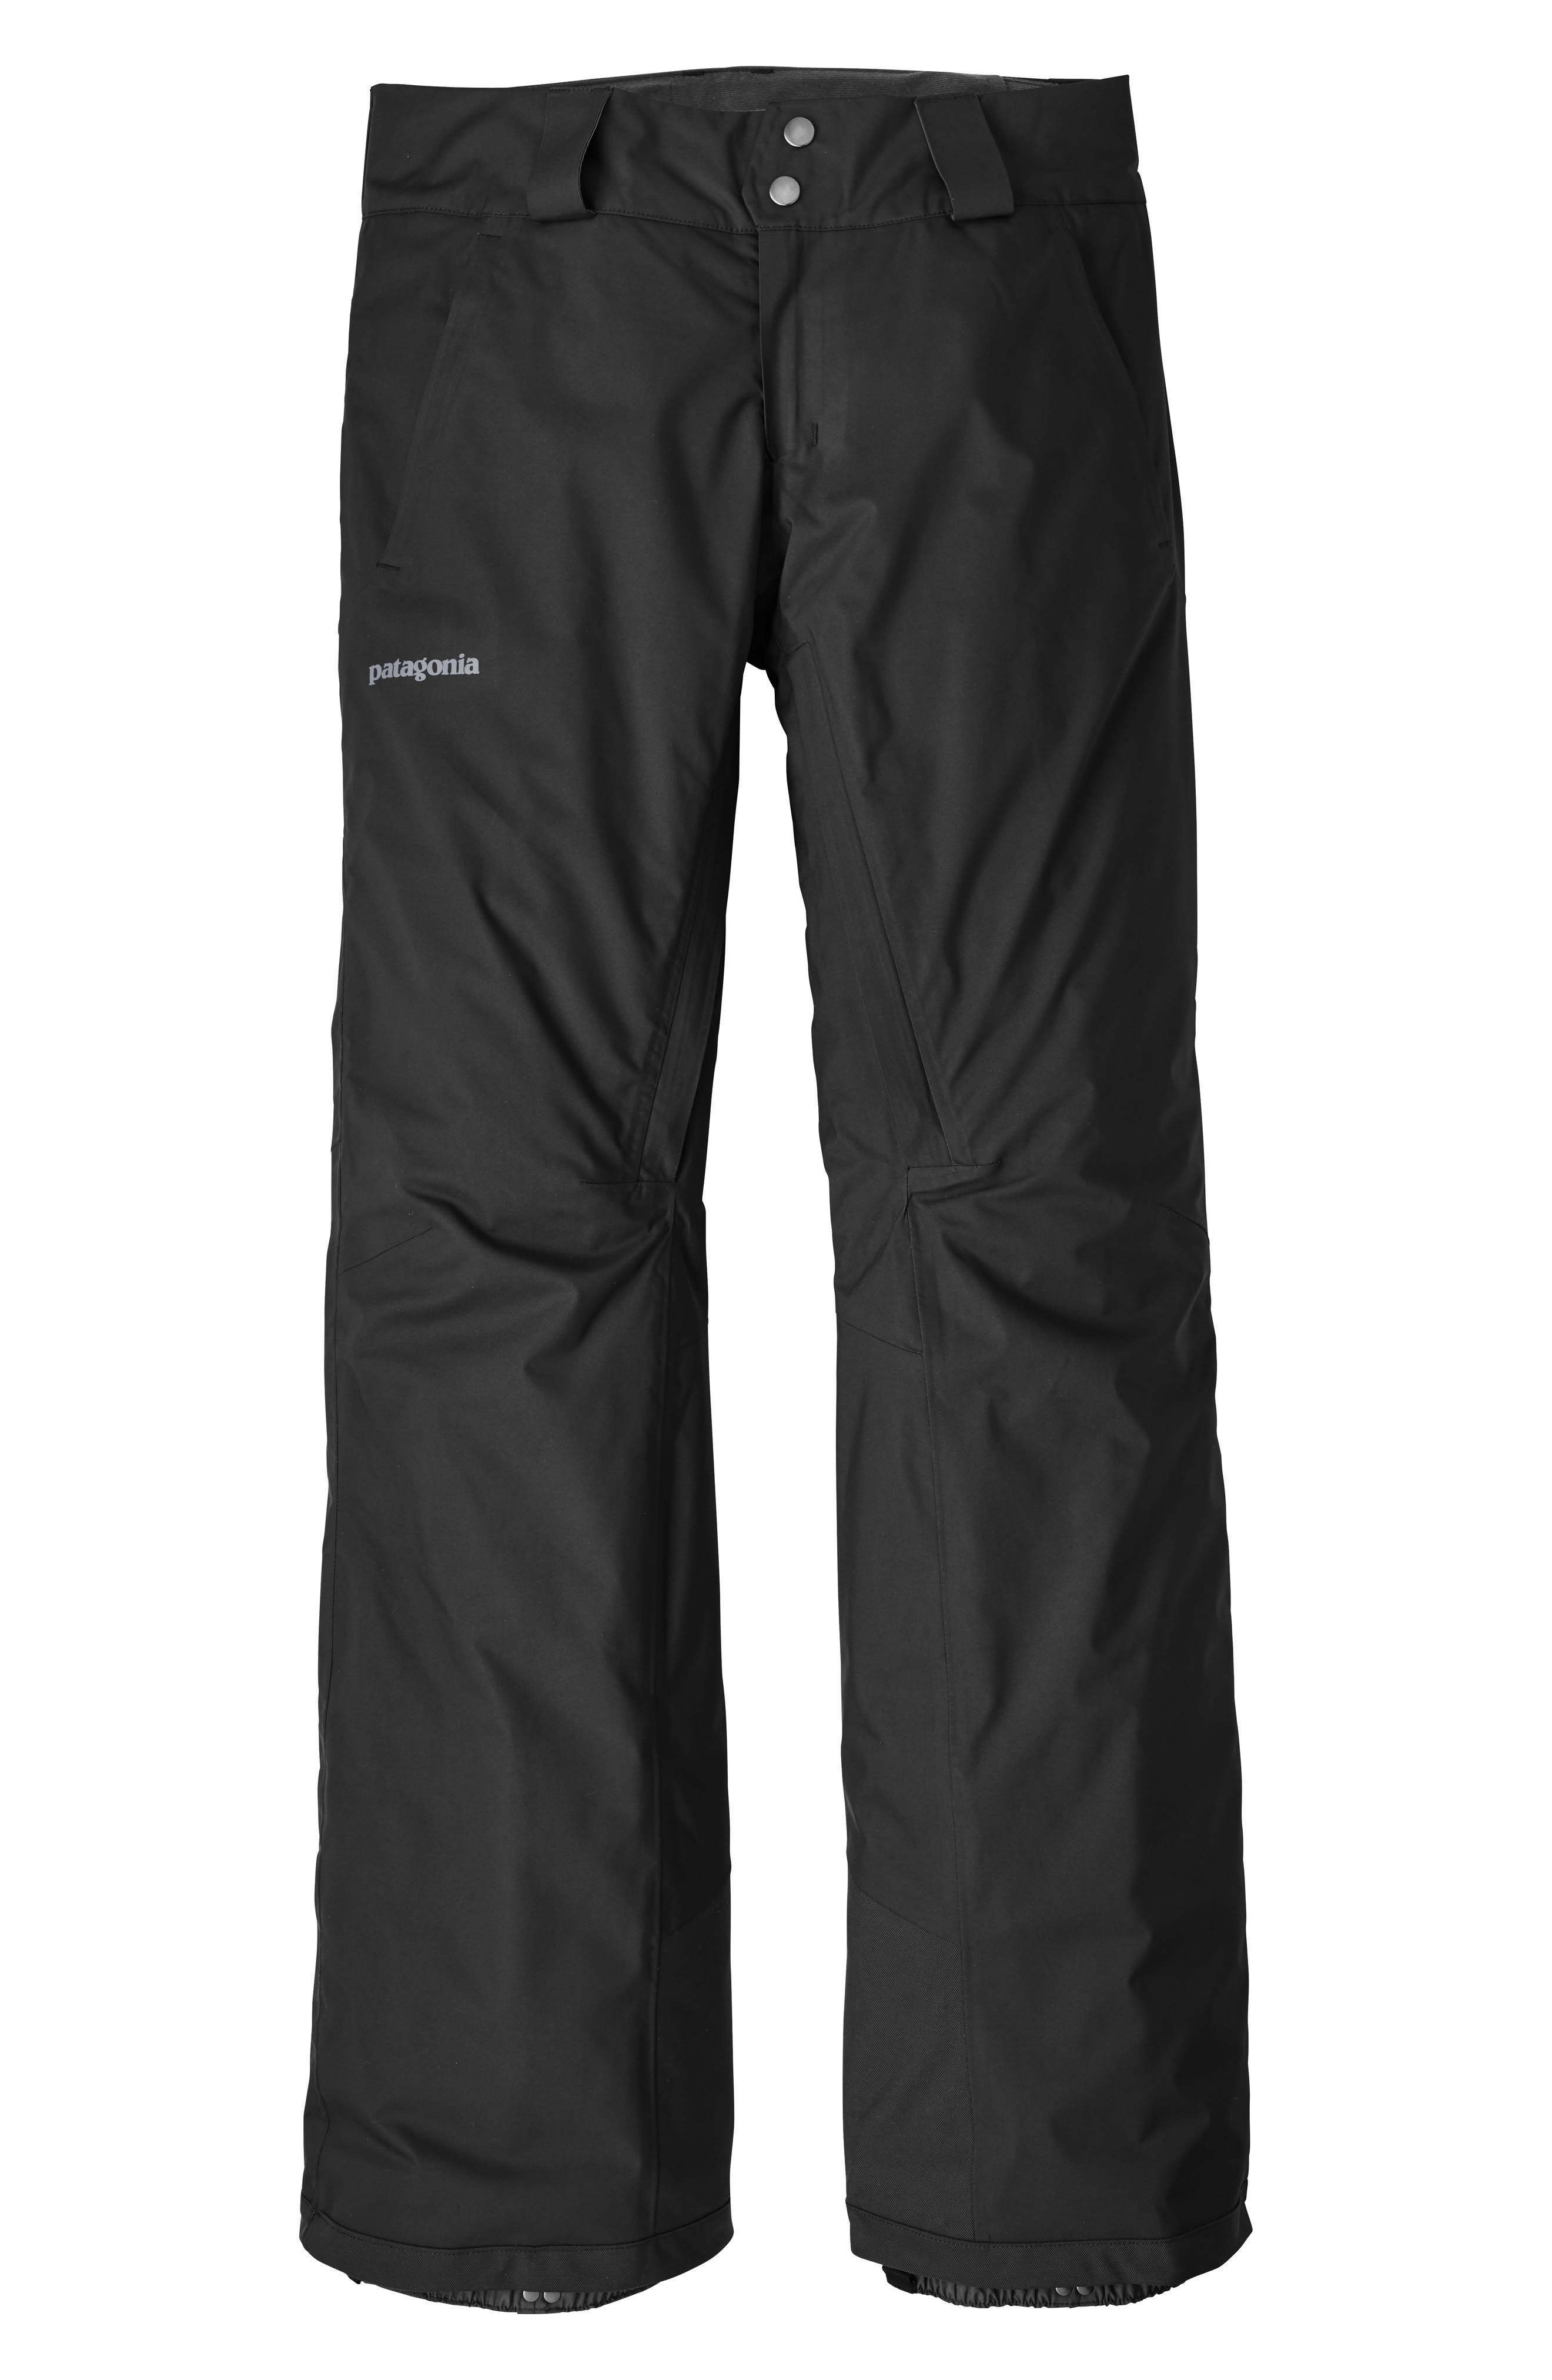 Snowbelle Insulated Snow Pants,                             Main thumbnail 1, color,                             001